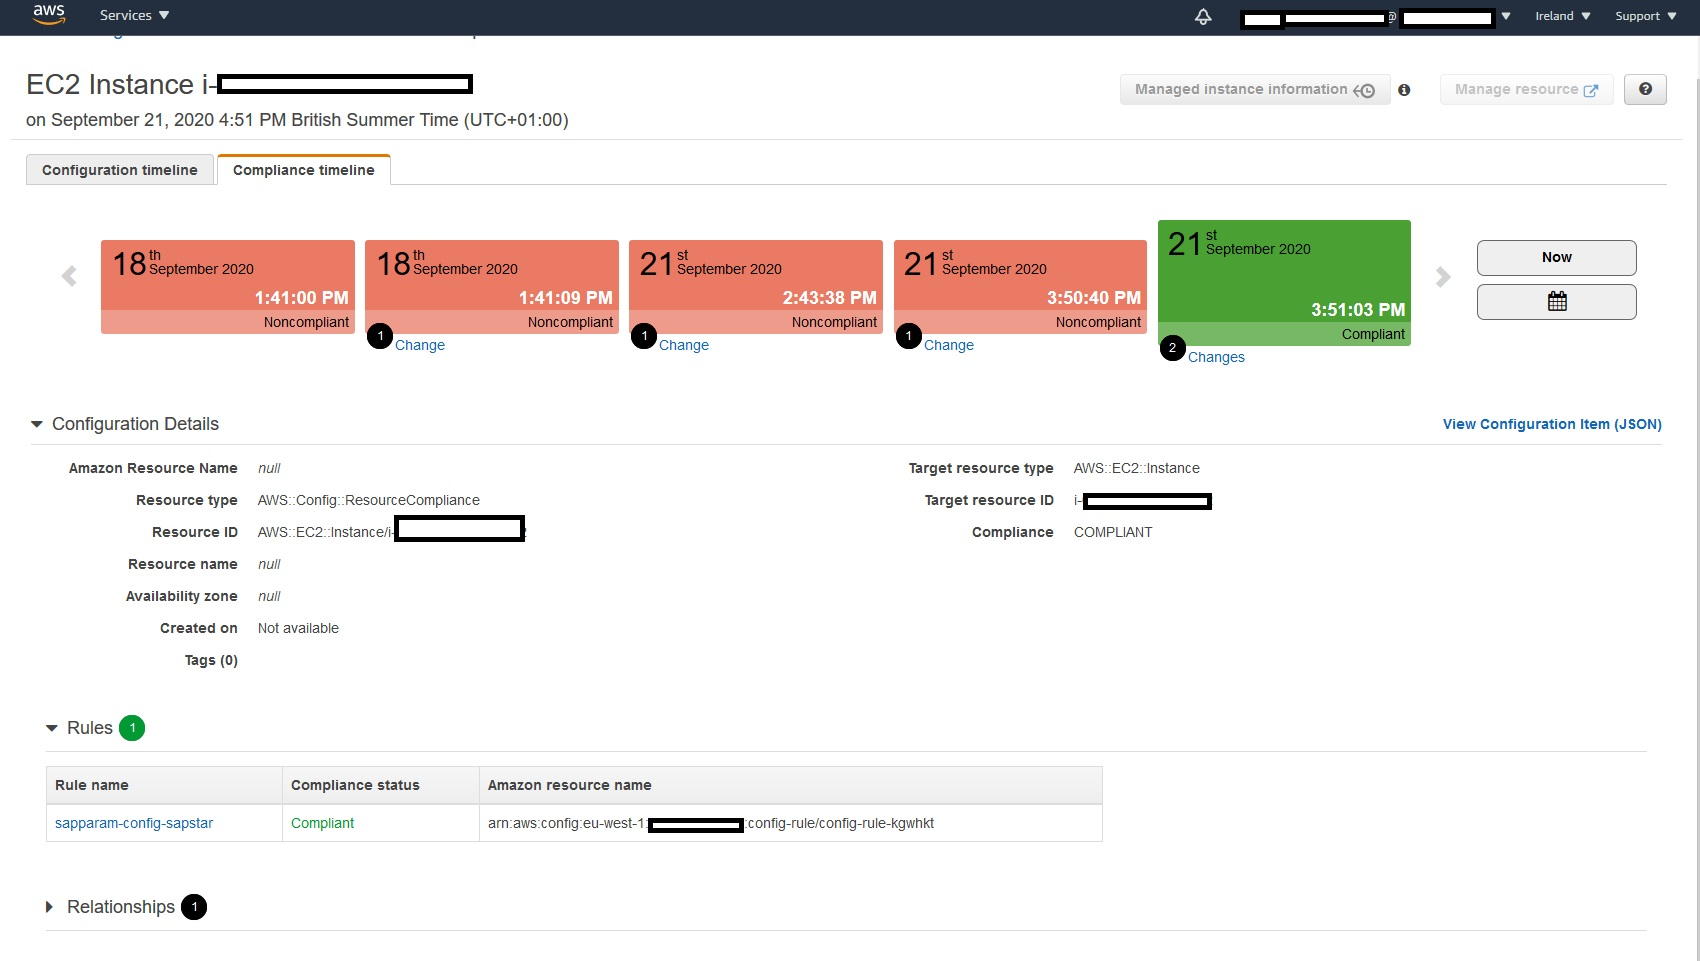 Compliance Timeline example - This example shows EC2 instance as non-compliant from 18th September 2020 and back in compliant status from 21st September 2020